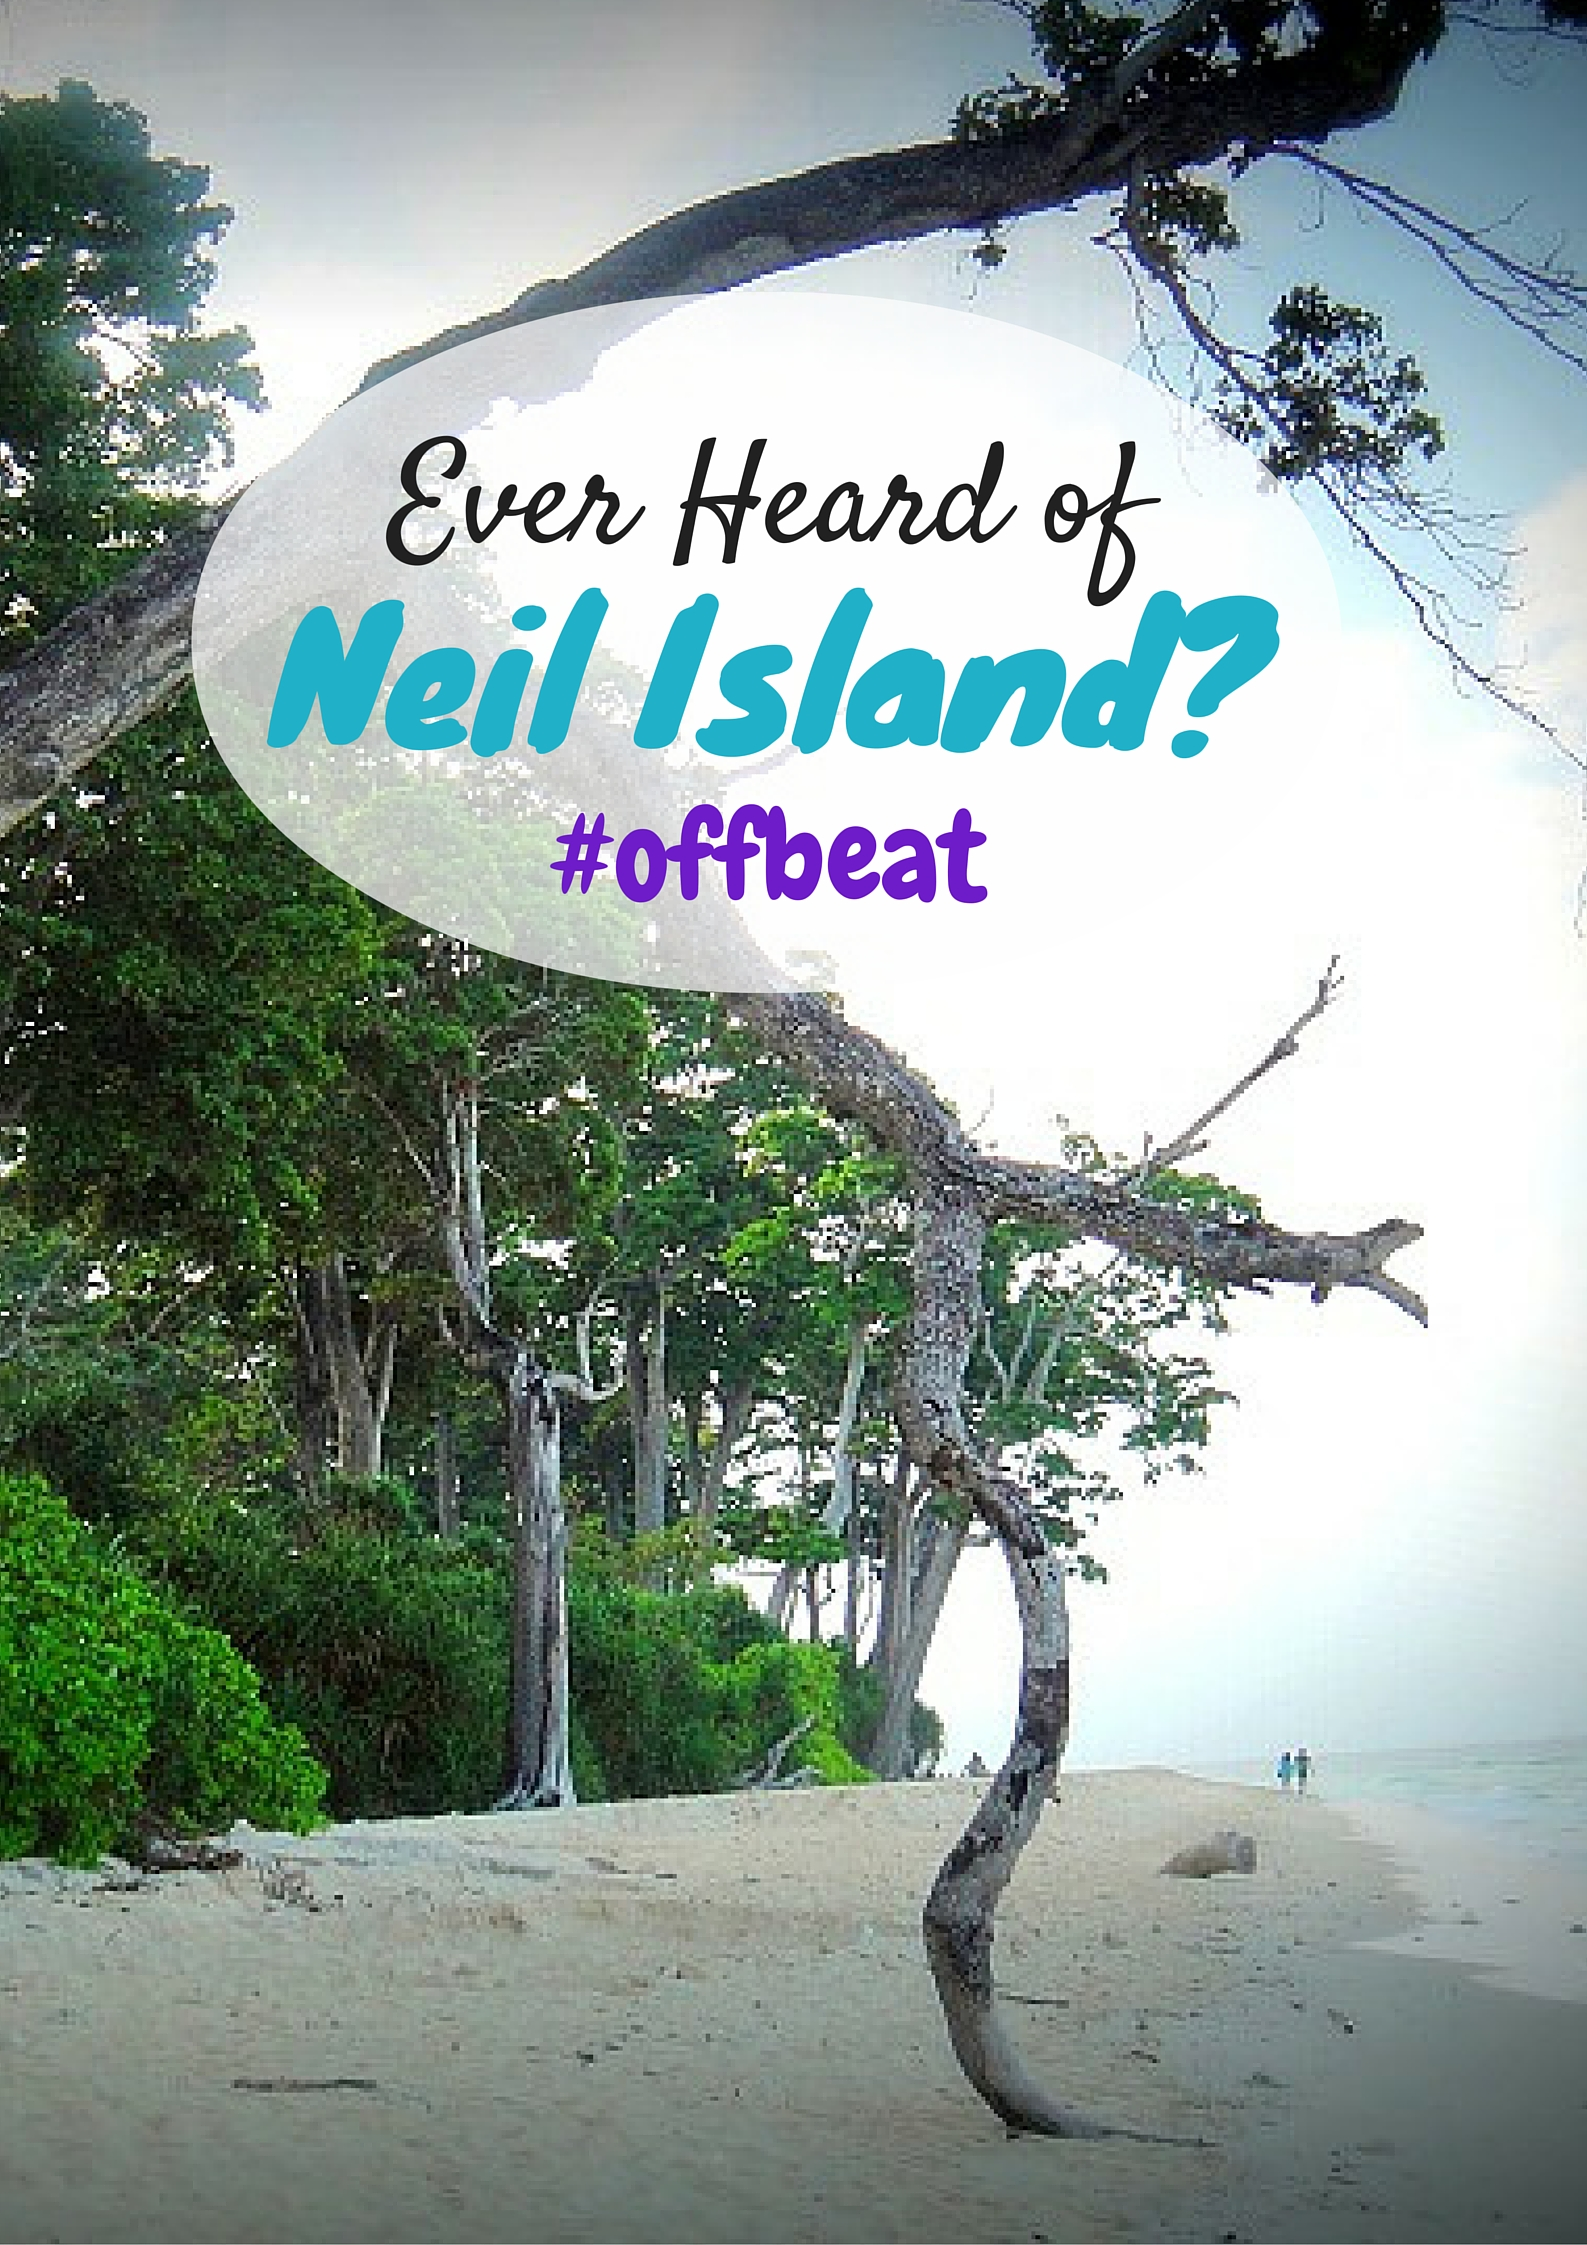 Islands Of The World Fashion Week 2012: Neil Island Of The Andaman And Nicobar Islands, India